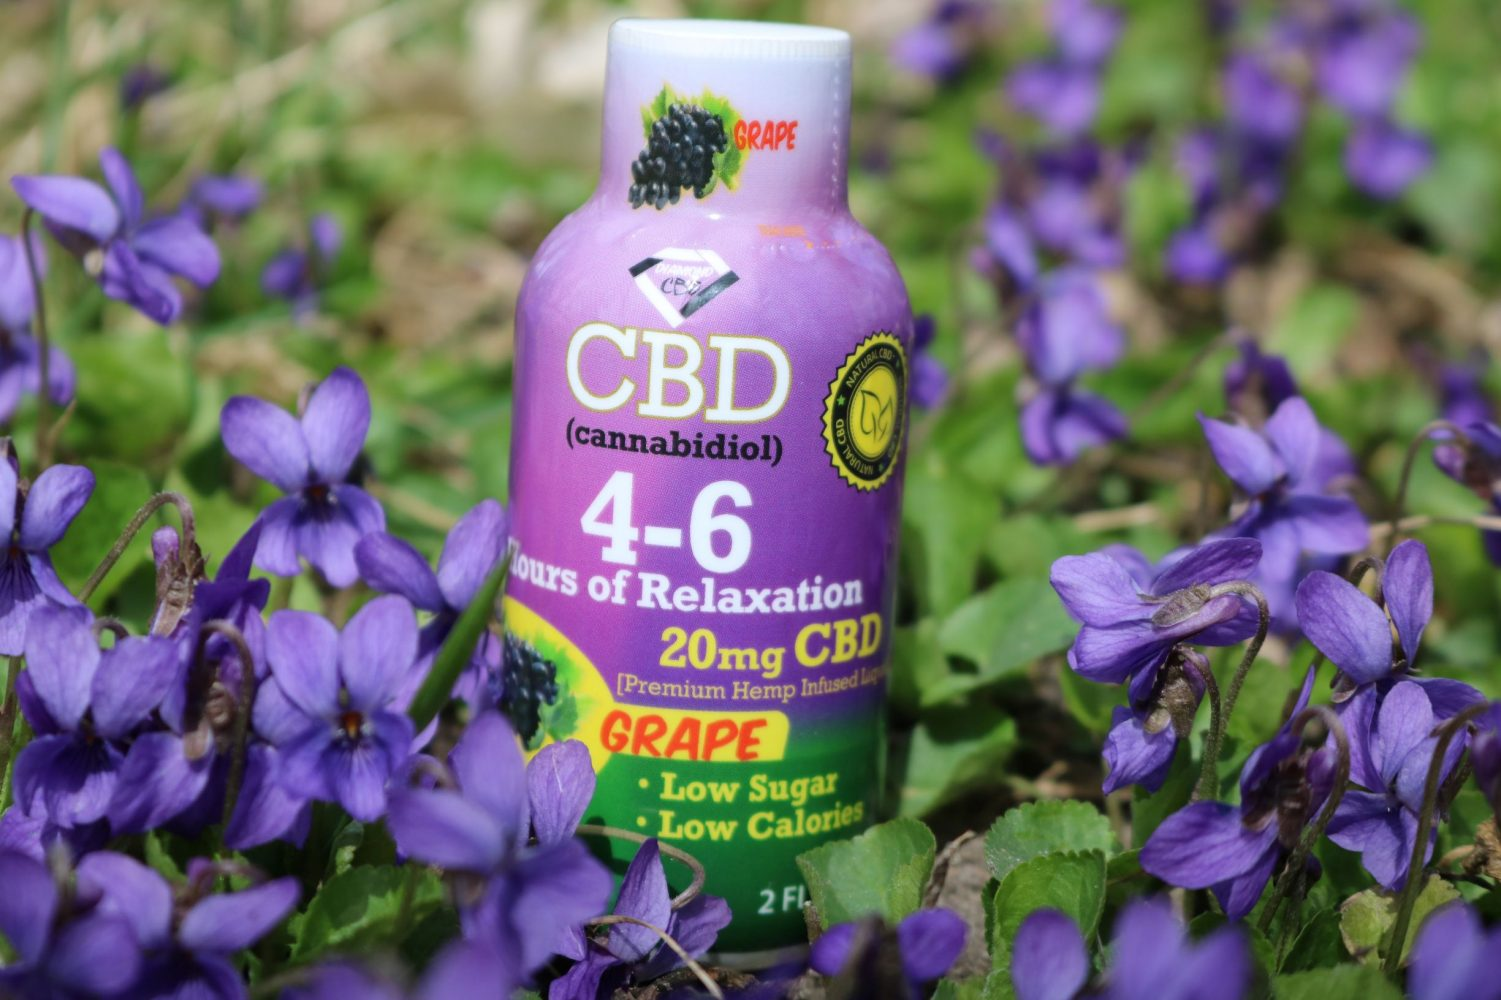 What are the best reasons to try CBD?